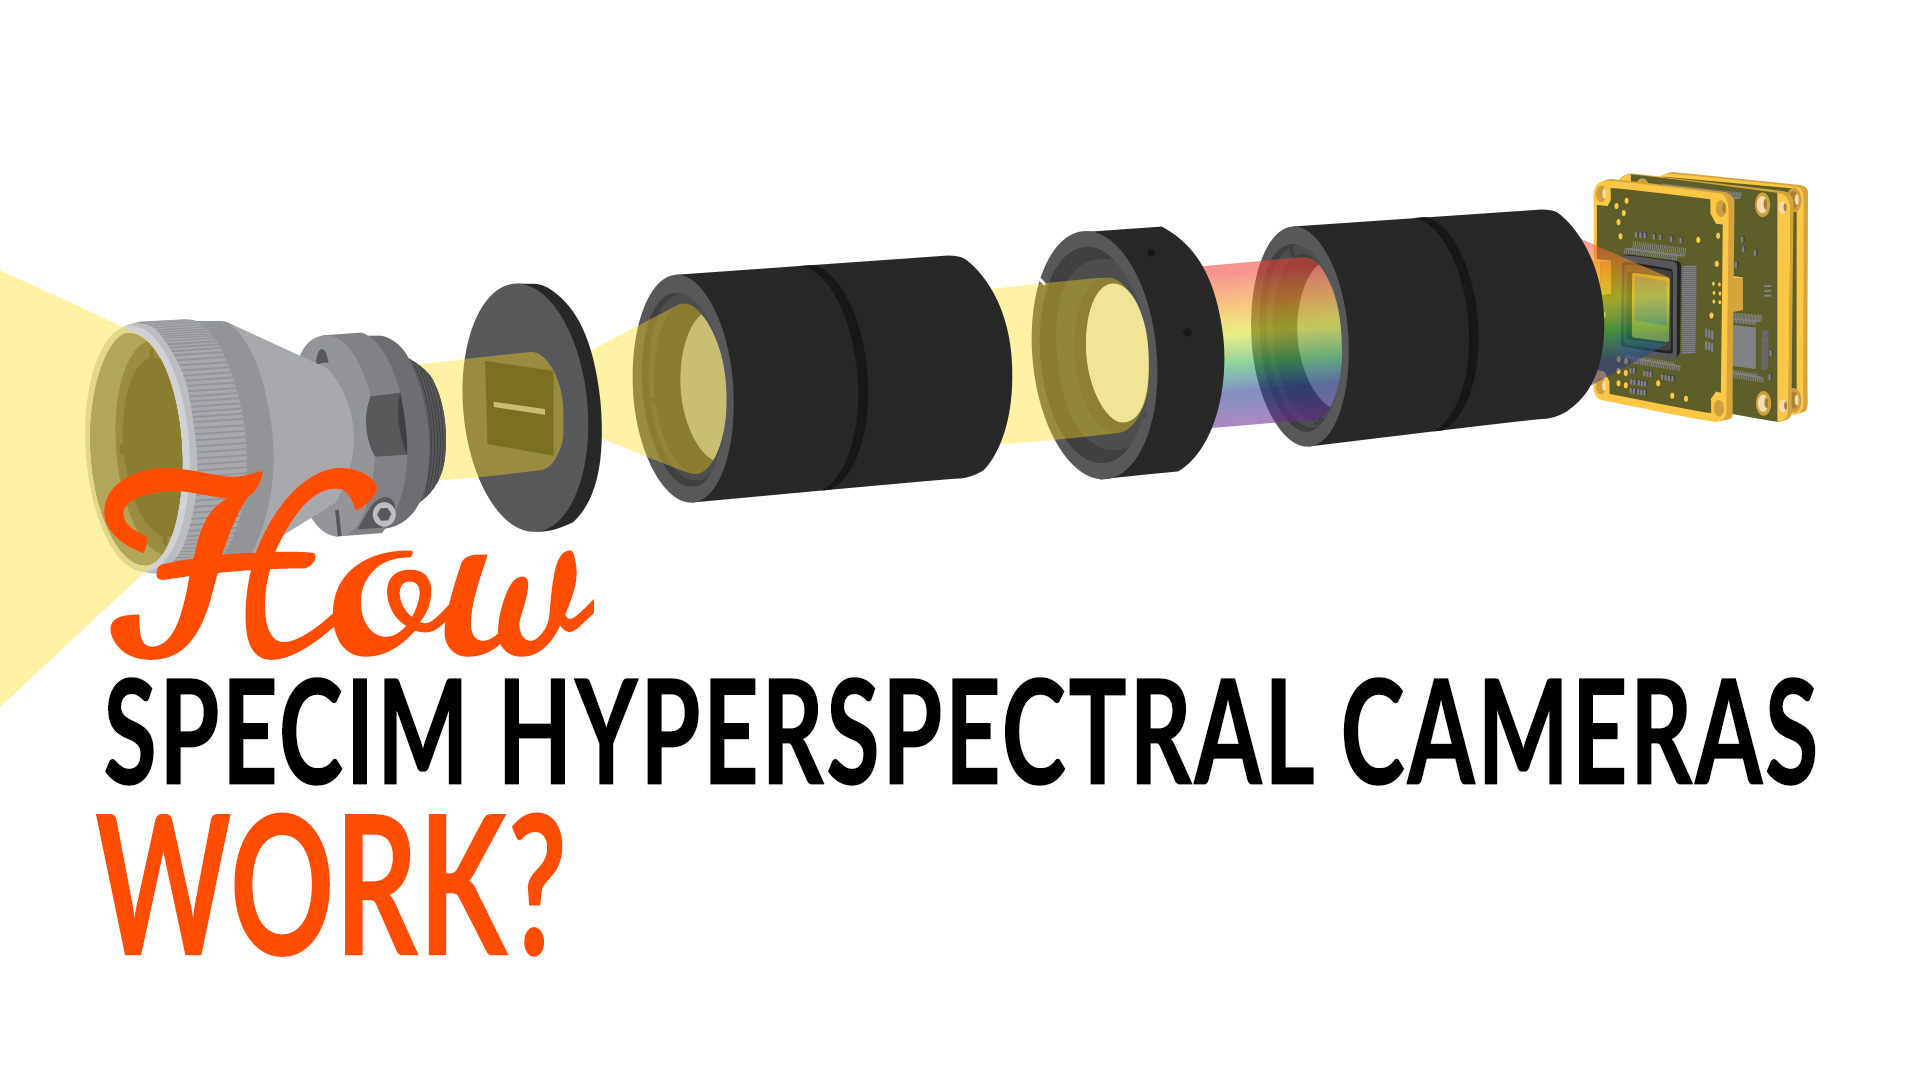 How Specim hyperspectral cameras work?